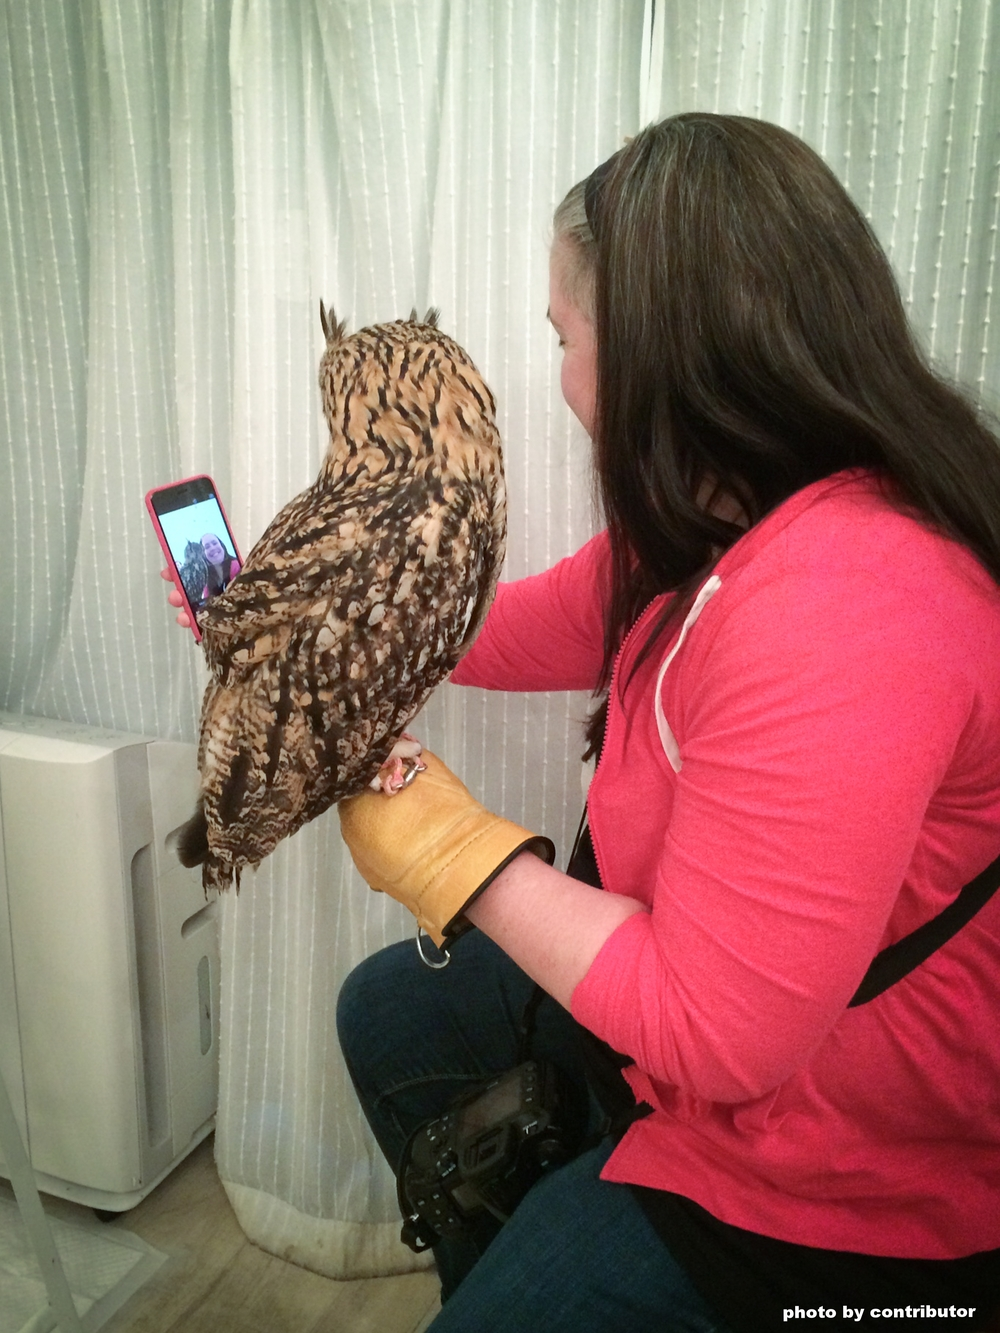 taking a selfie with an owl